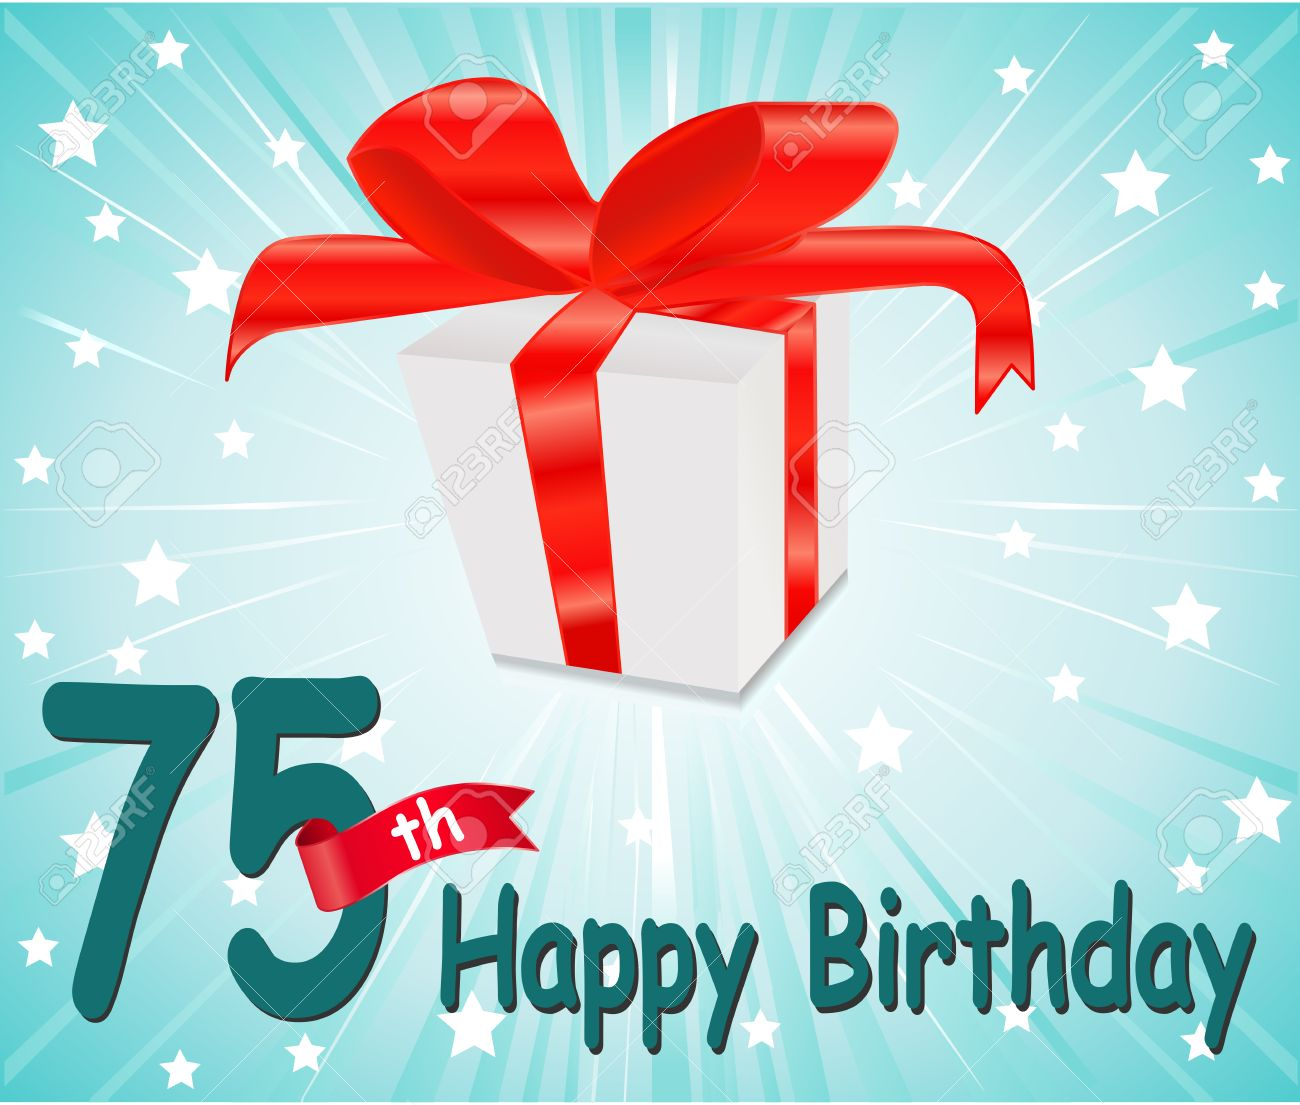 75 Year Happy Birthday Card With Gift And Colorful Background Stock Vector